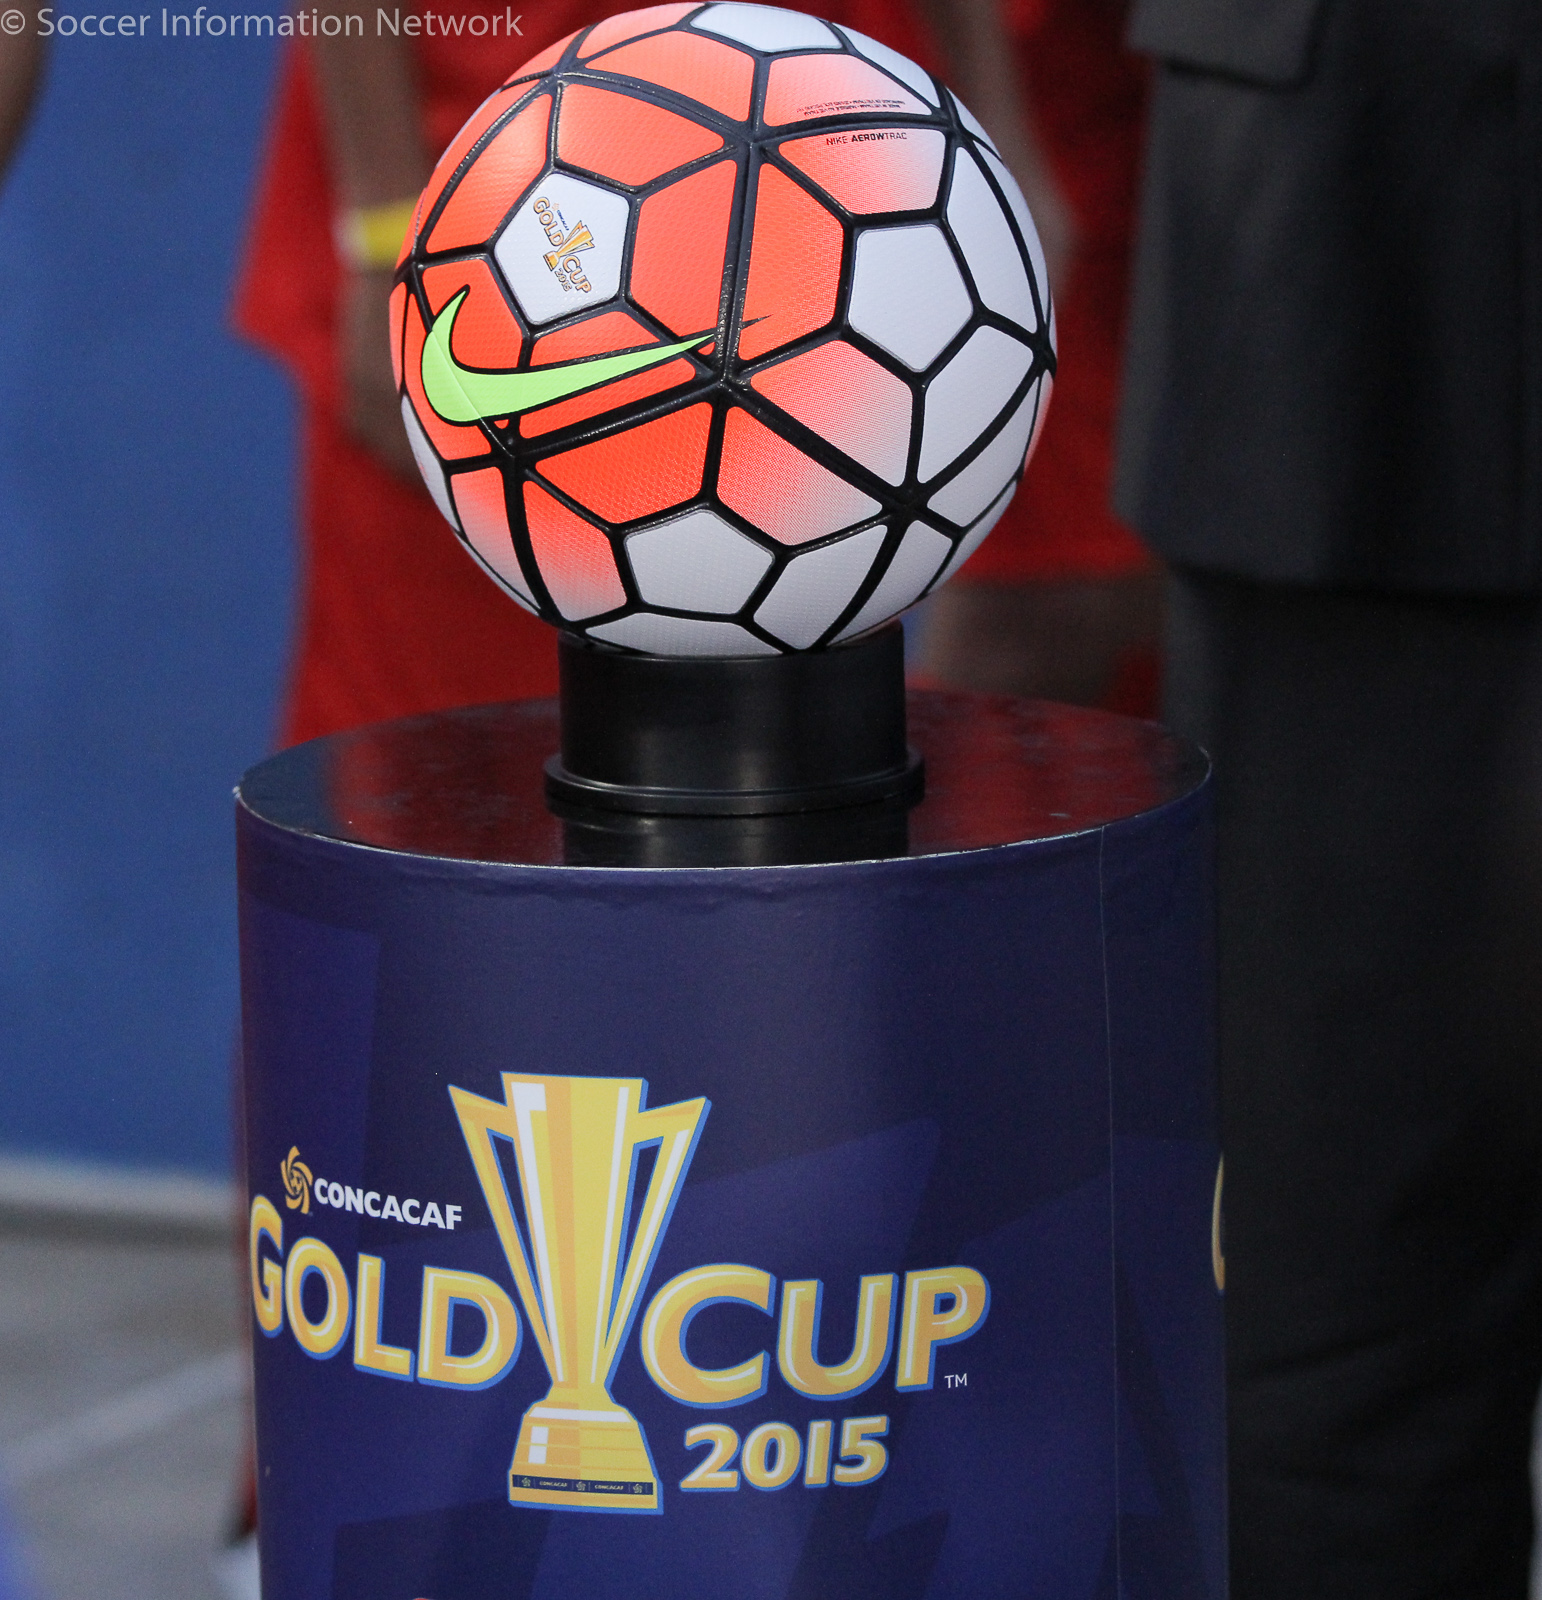 goldcup-6009